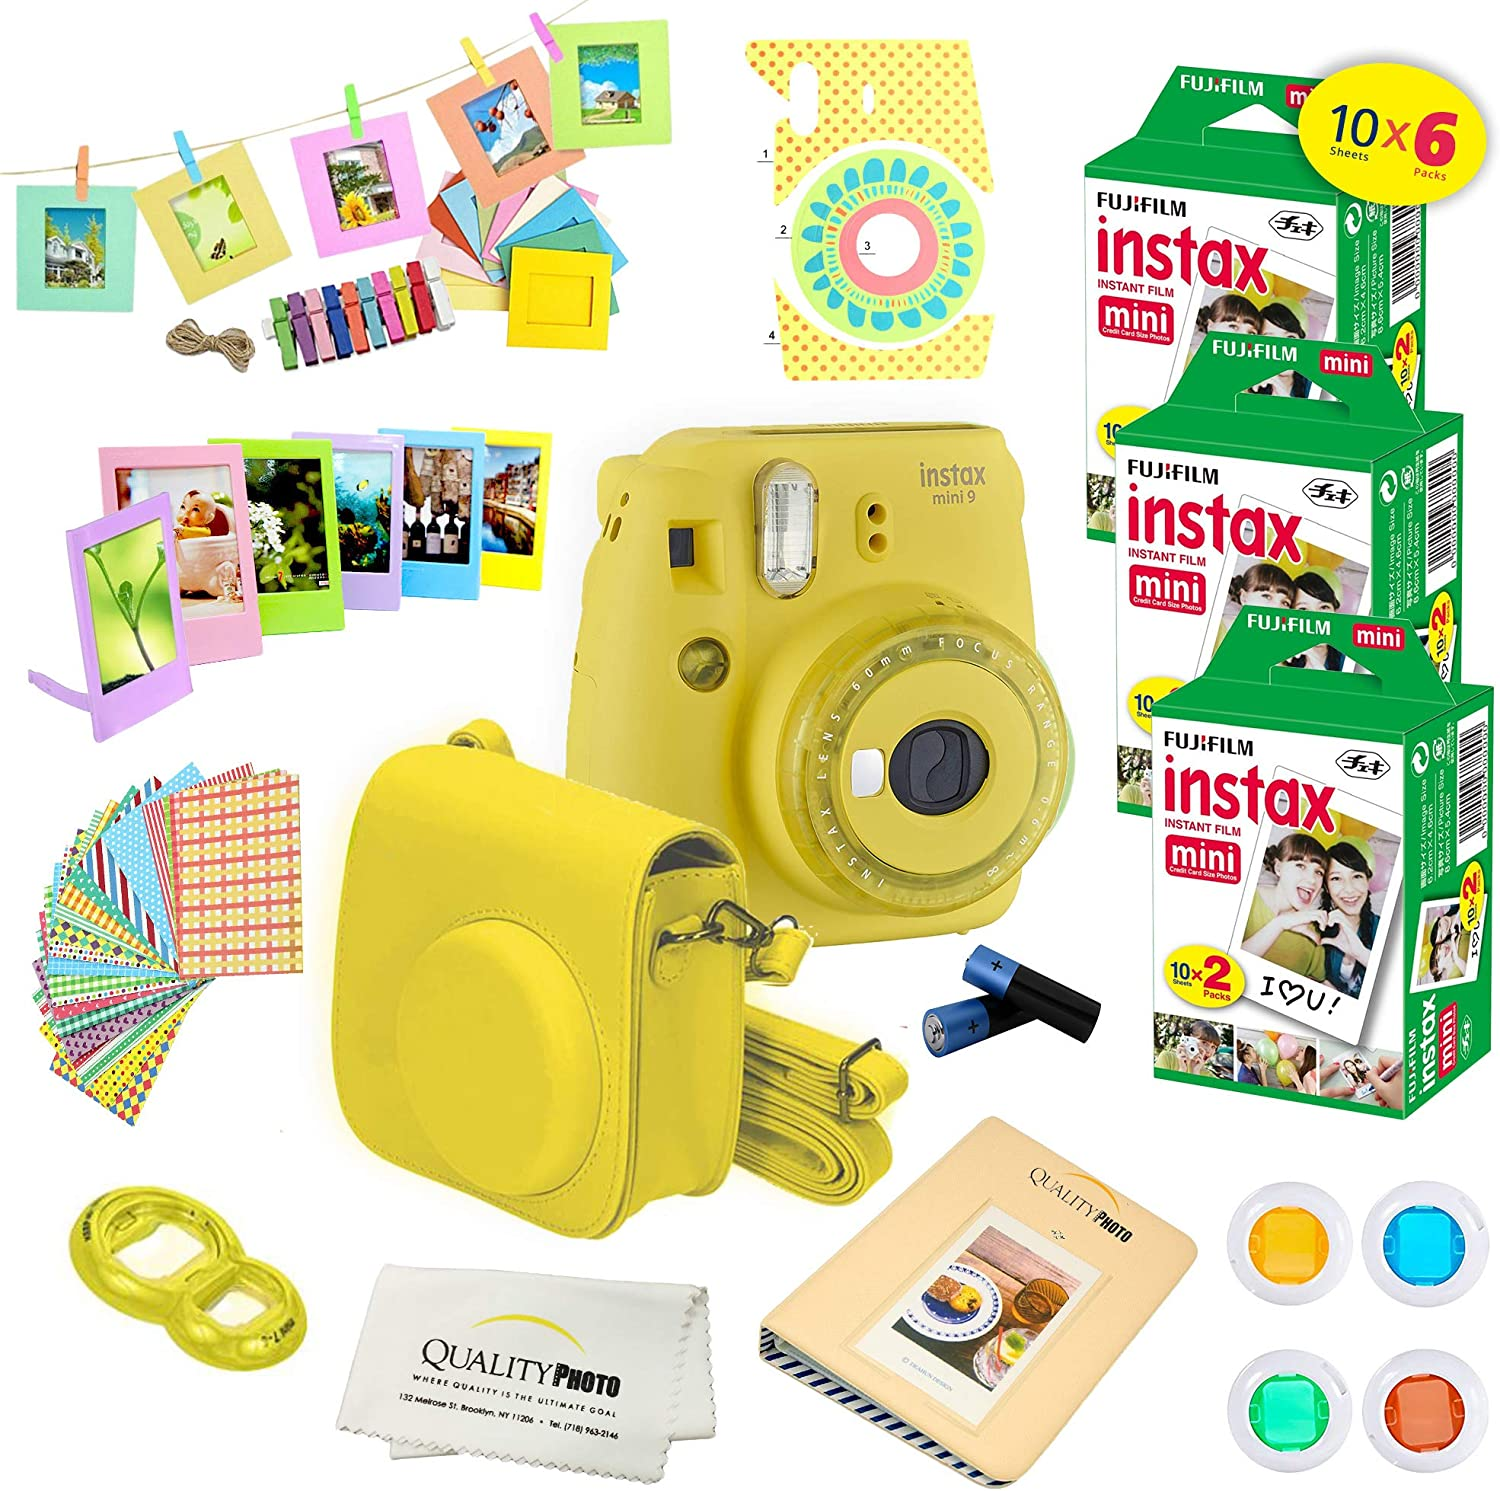 Fujifilm Instax Mini 9 Instant Camera W Fujifilm Instax Mini 9 Instant Films 60 Pack A14 Pc Deluxe Bundle For Fujifilm Instax Mini 9 Camera Yellow Camera Photo